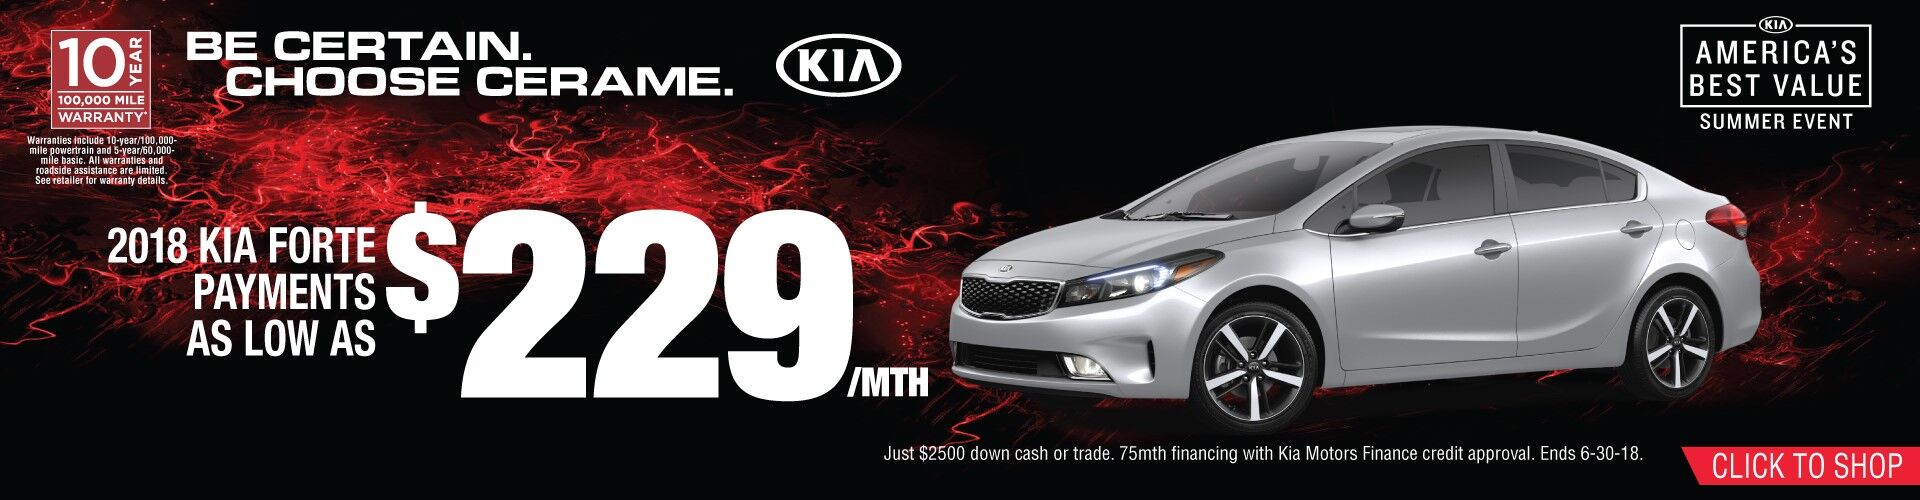 small are st best dealers butler louis march suvs kia at powerhouse jim dependable sportages